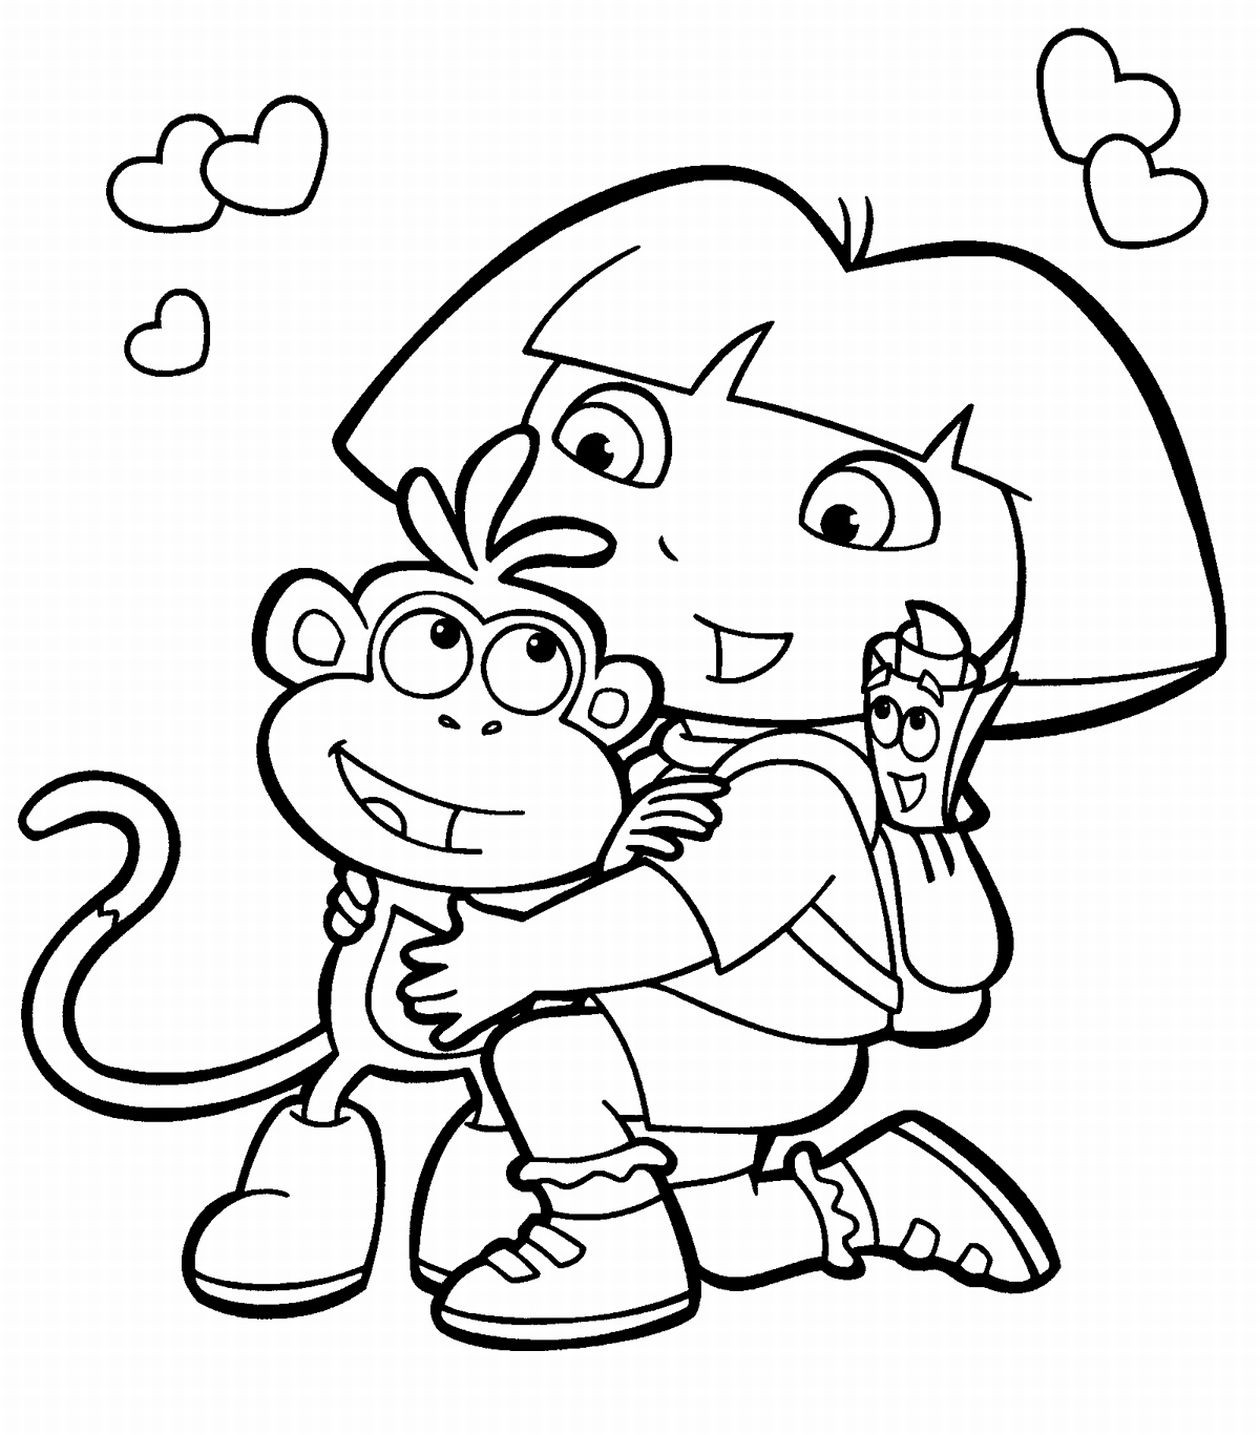 Kids Color Pages Best Free Printable Coloring Pages For Kids And Teens Pata Sauti